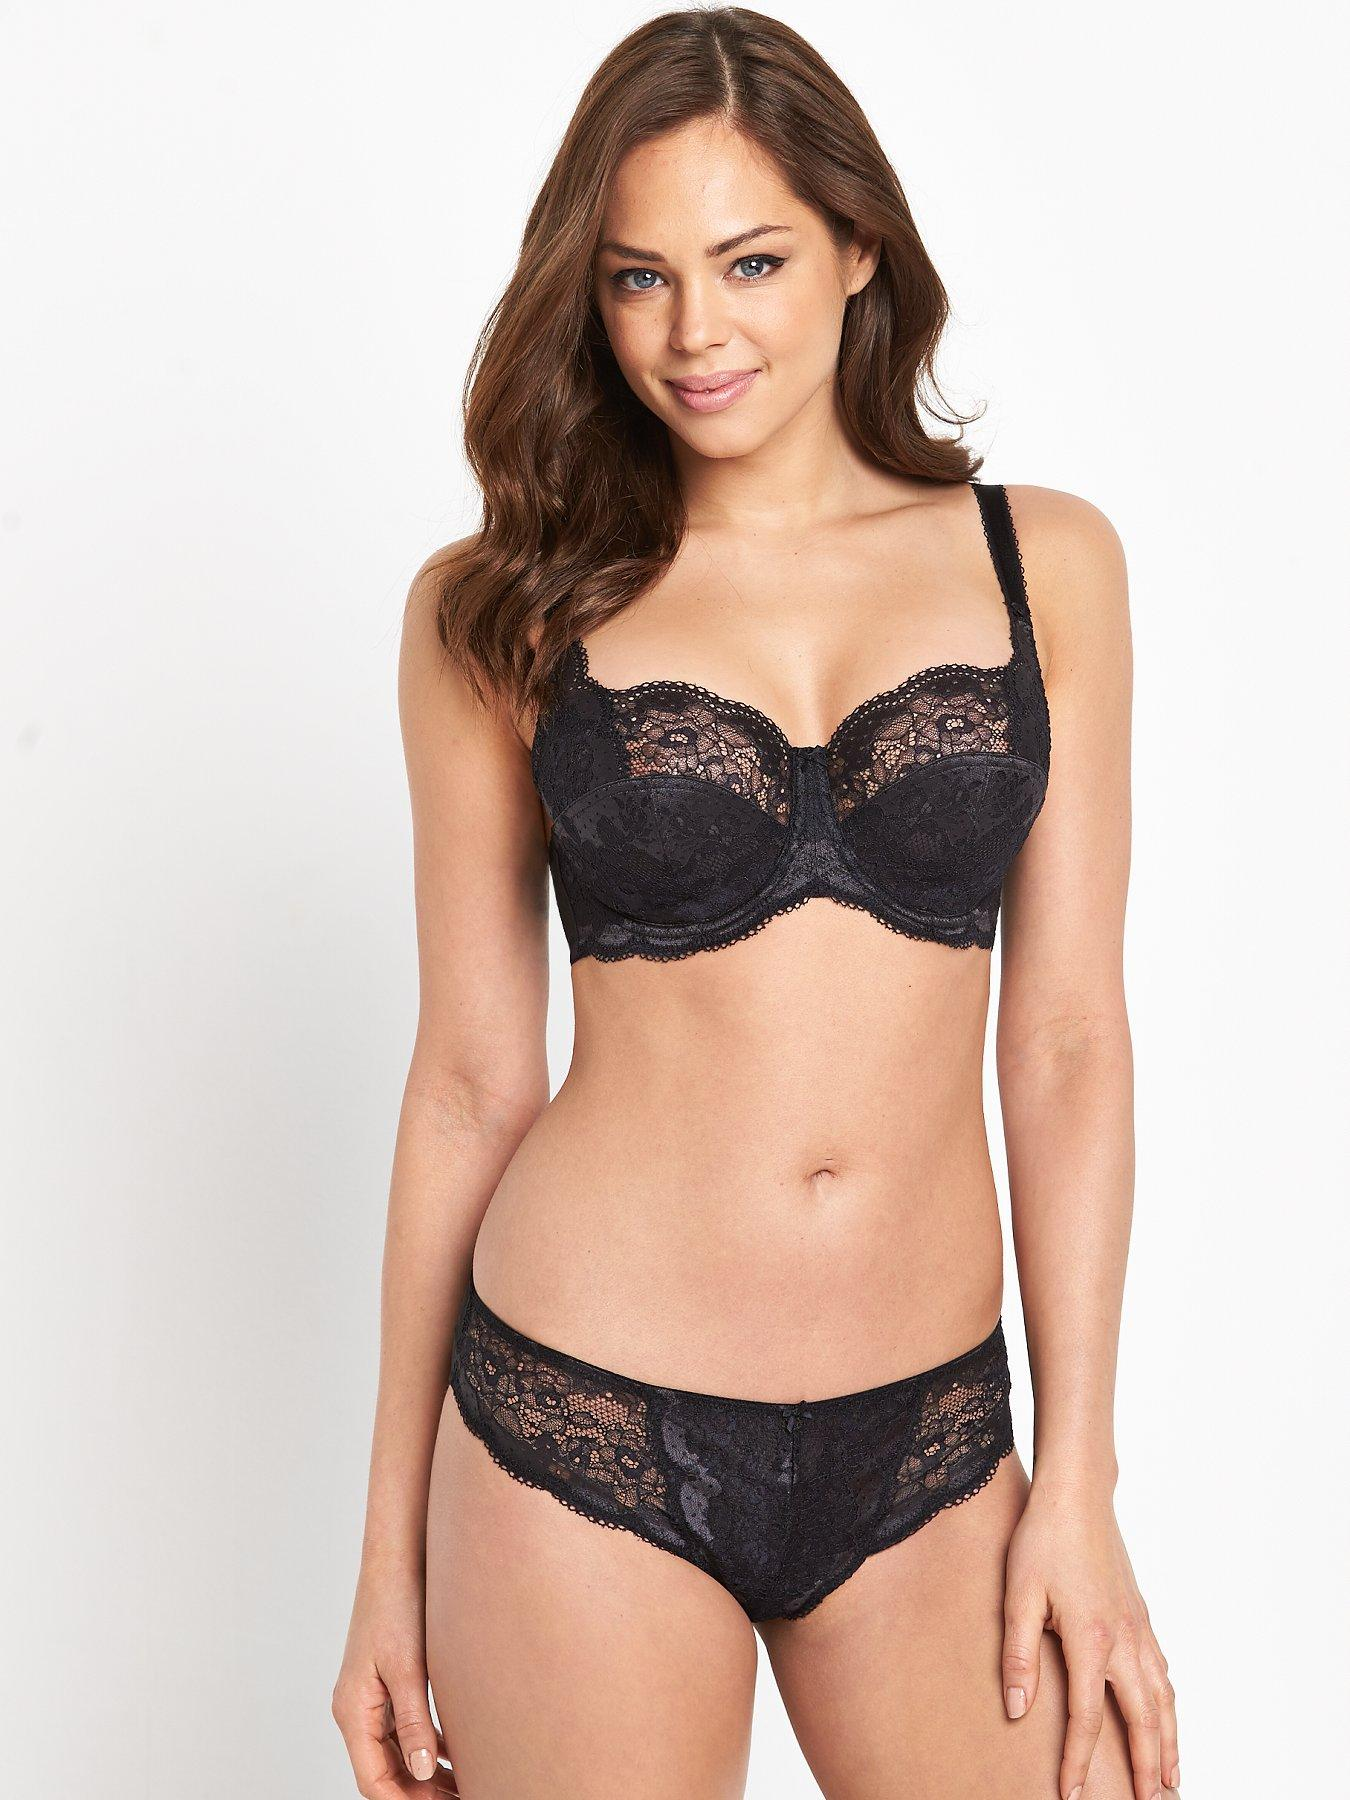 Clever Panache Lingerie Black Brief Knickers ...size 12 Panties